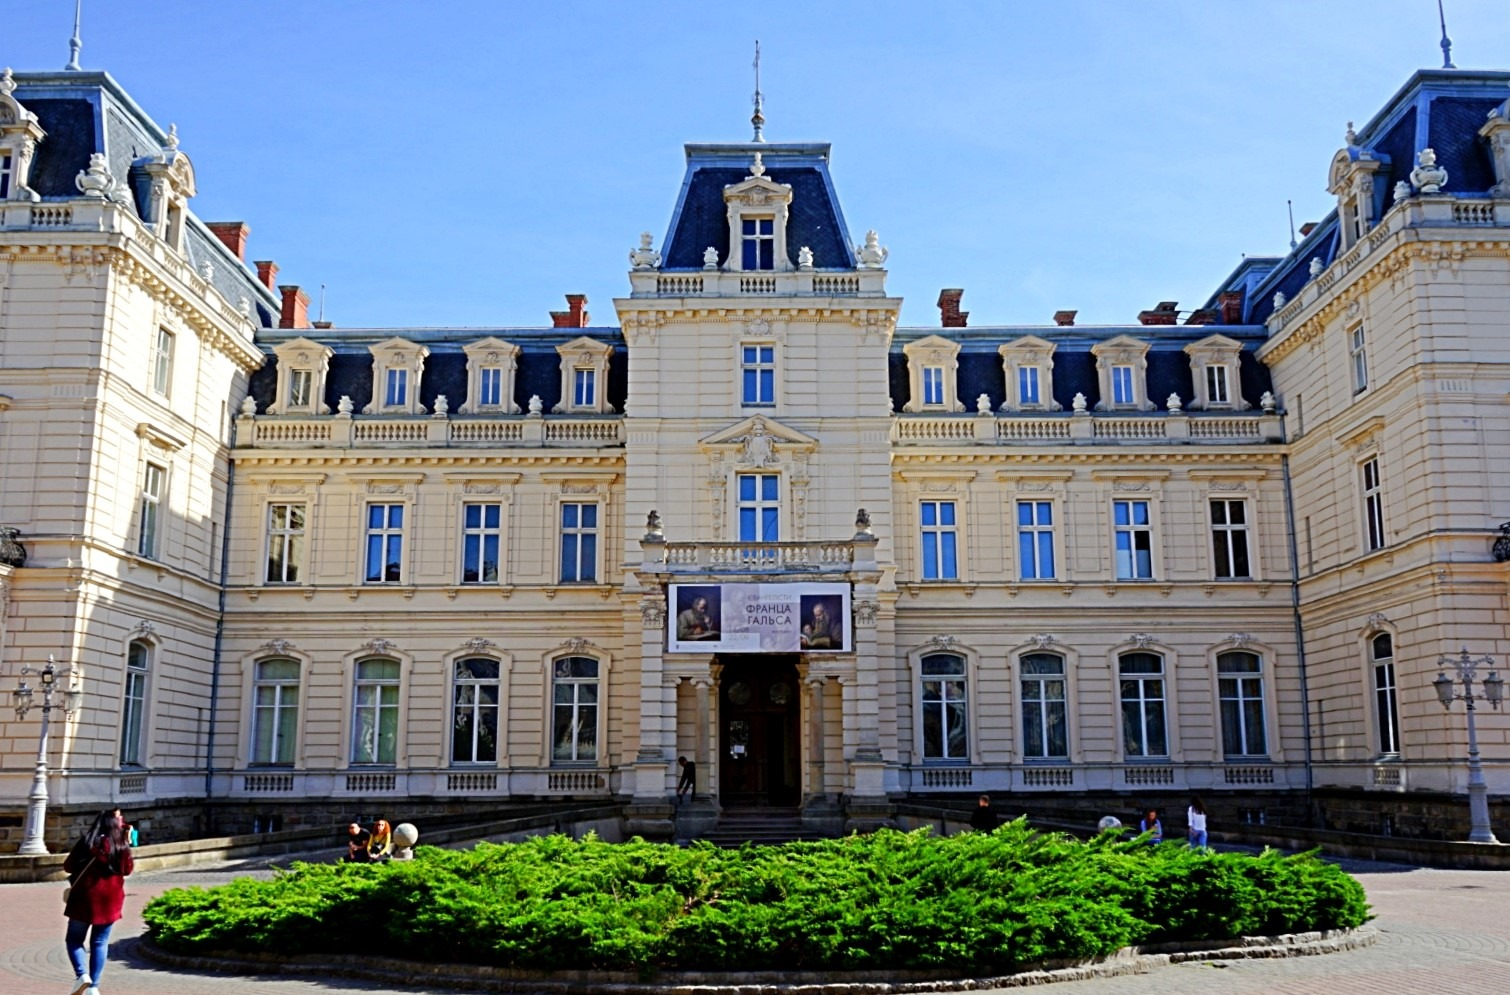 The front of the Potocki palace where is located an art gallery